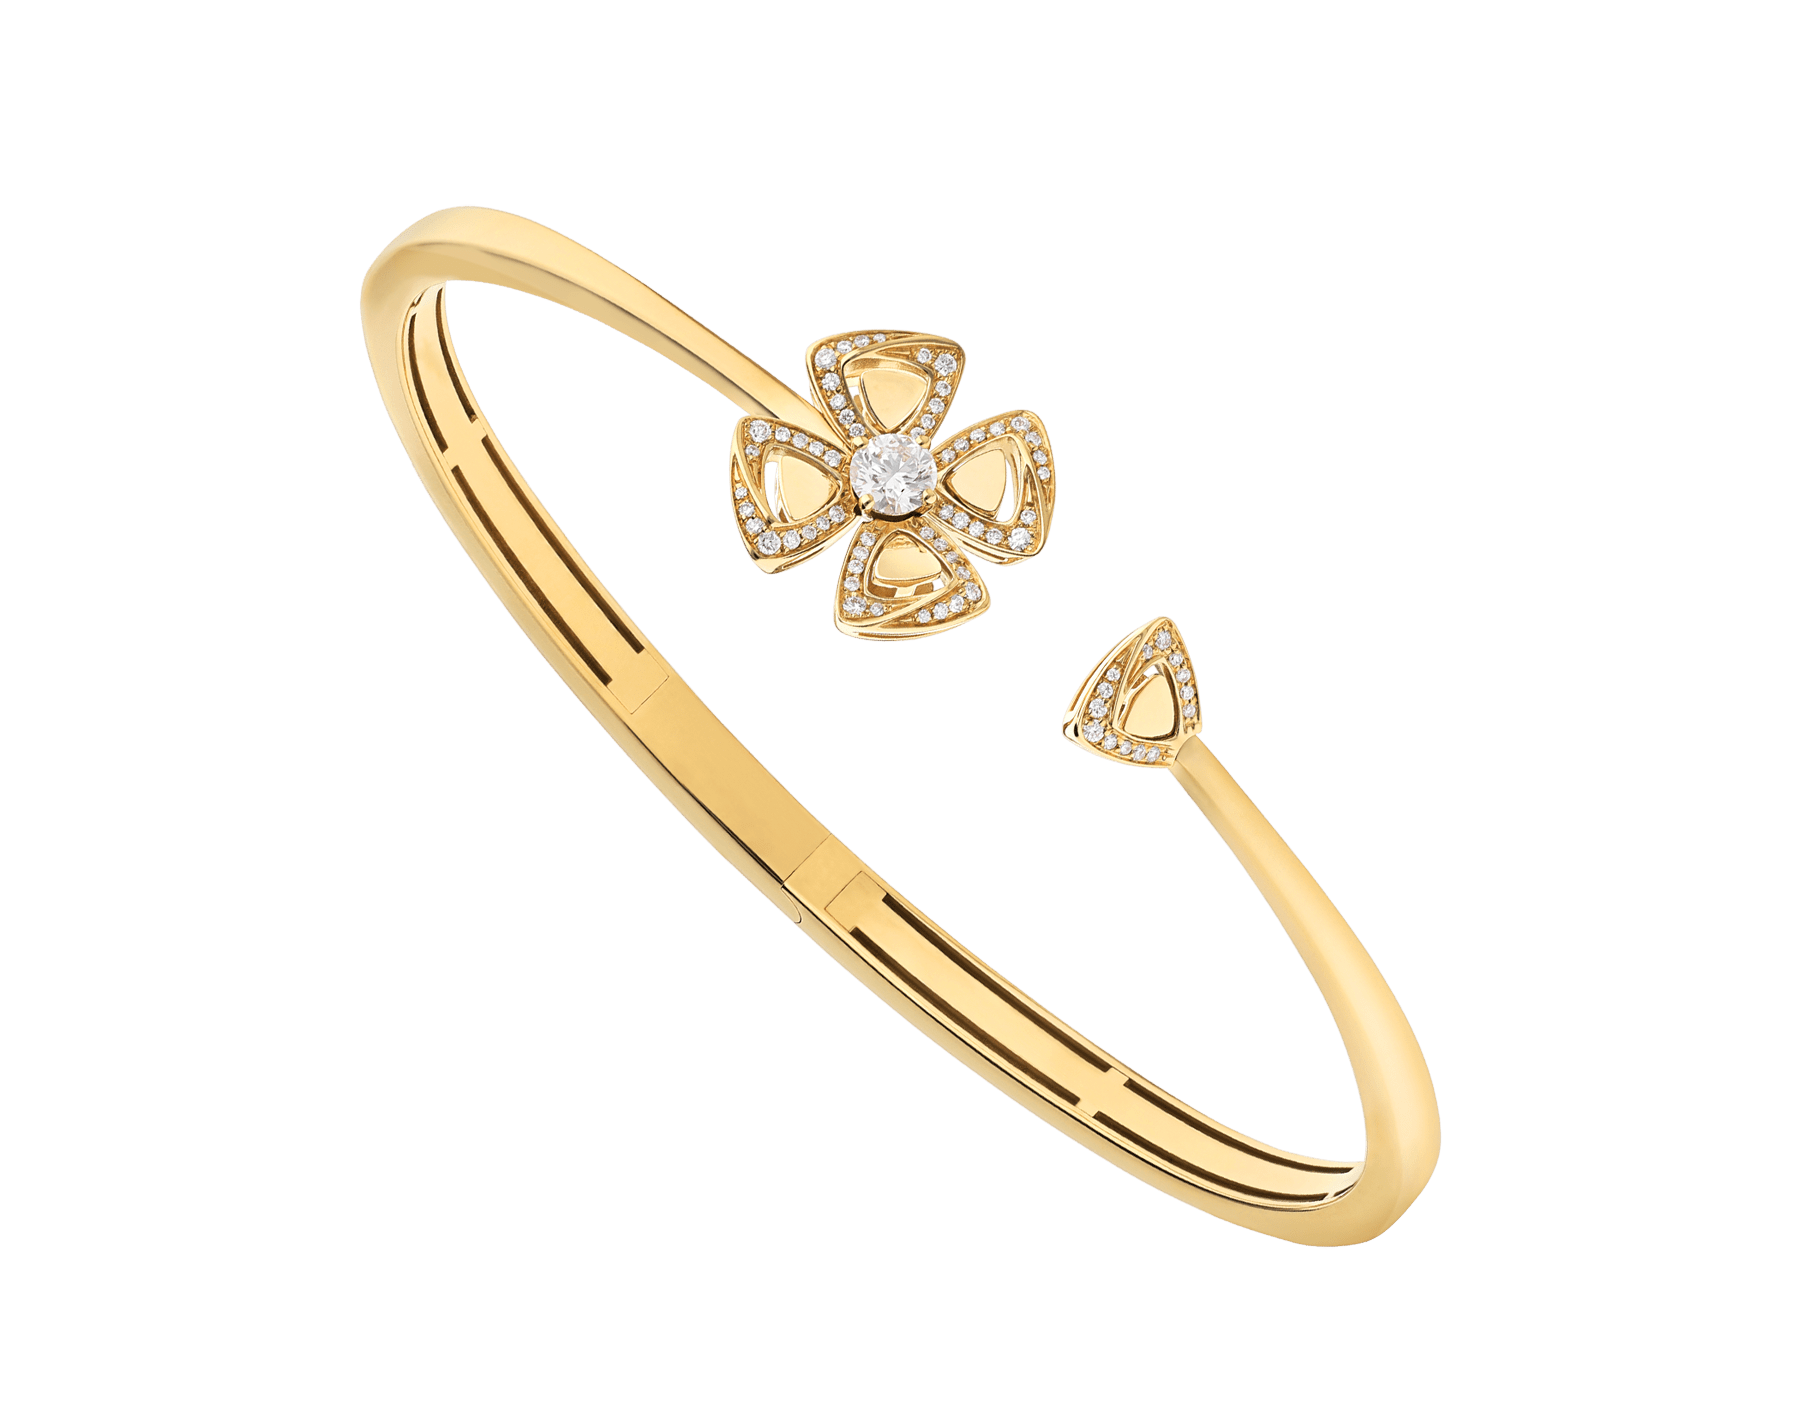 Fiorever 18 kt yellow gold bracelet set with a central diamond (0.20 ct) and pavé diamonds (0.15 ct) BR858997 image 1